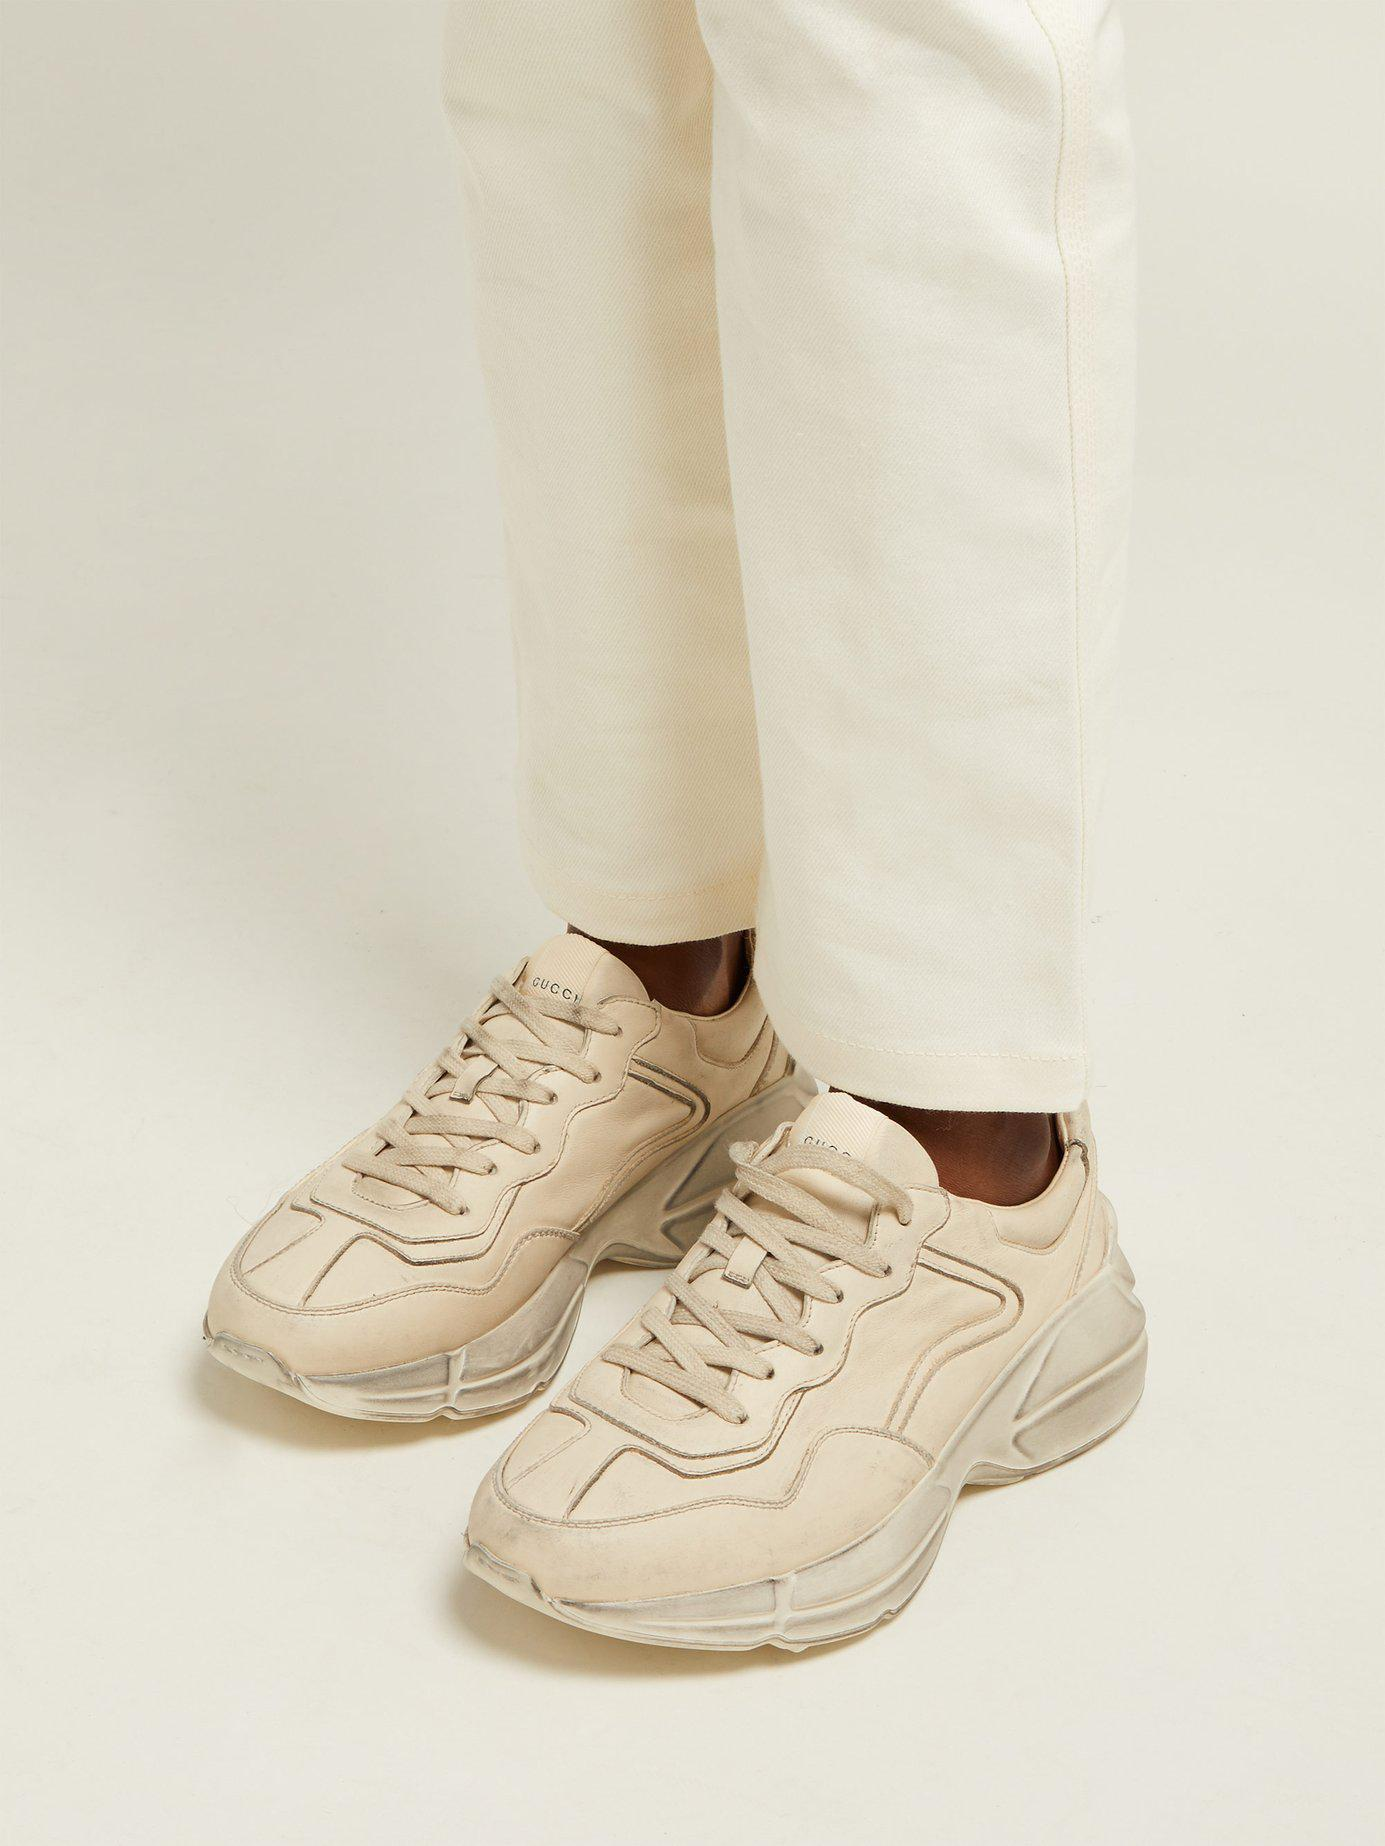 389bd8870cc Lyst - Gucci Rhyton Worn Effect Low Top Leather Trainers in Natural